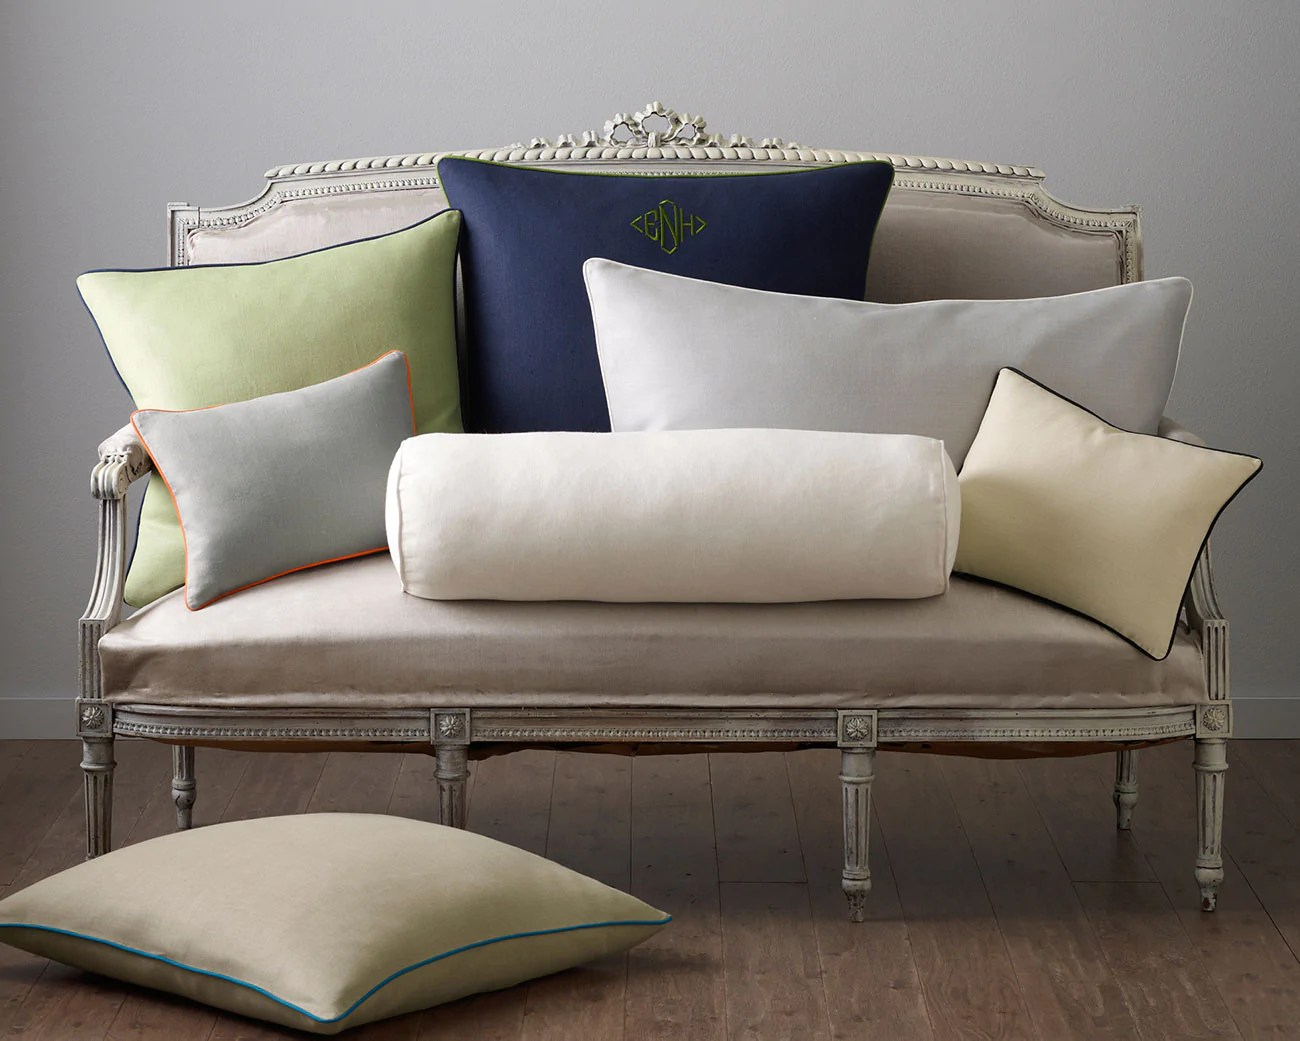 how to wash throw pillows decorative